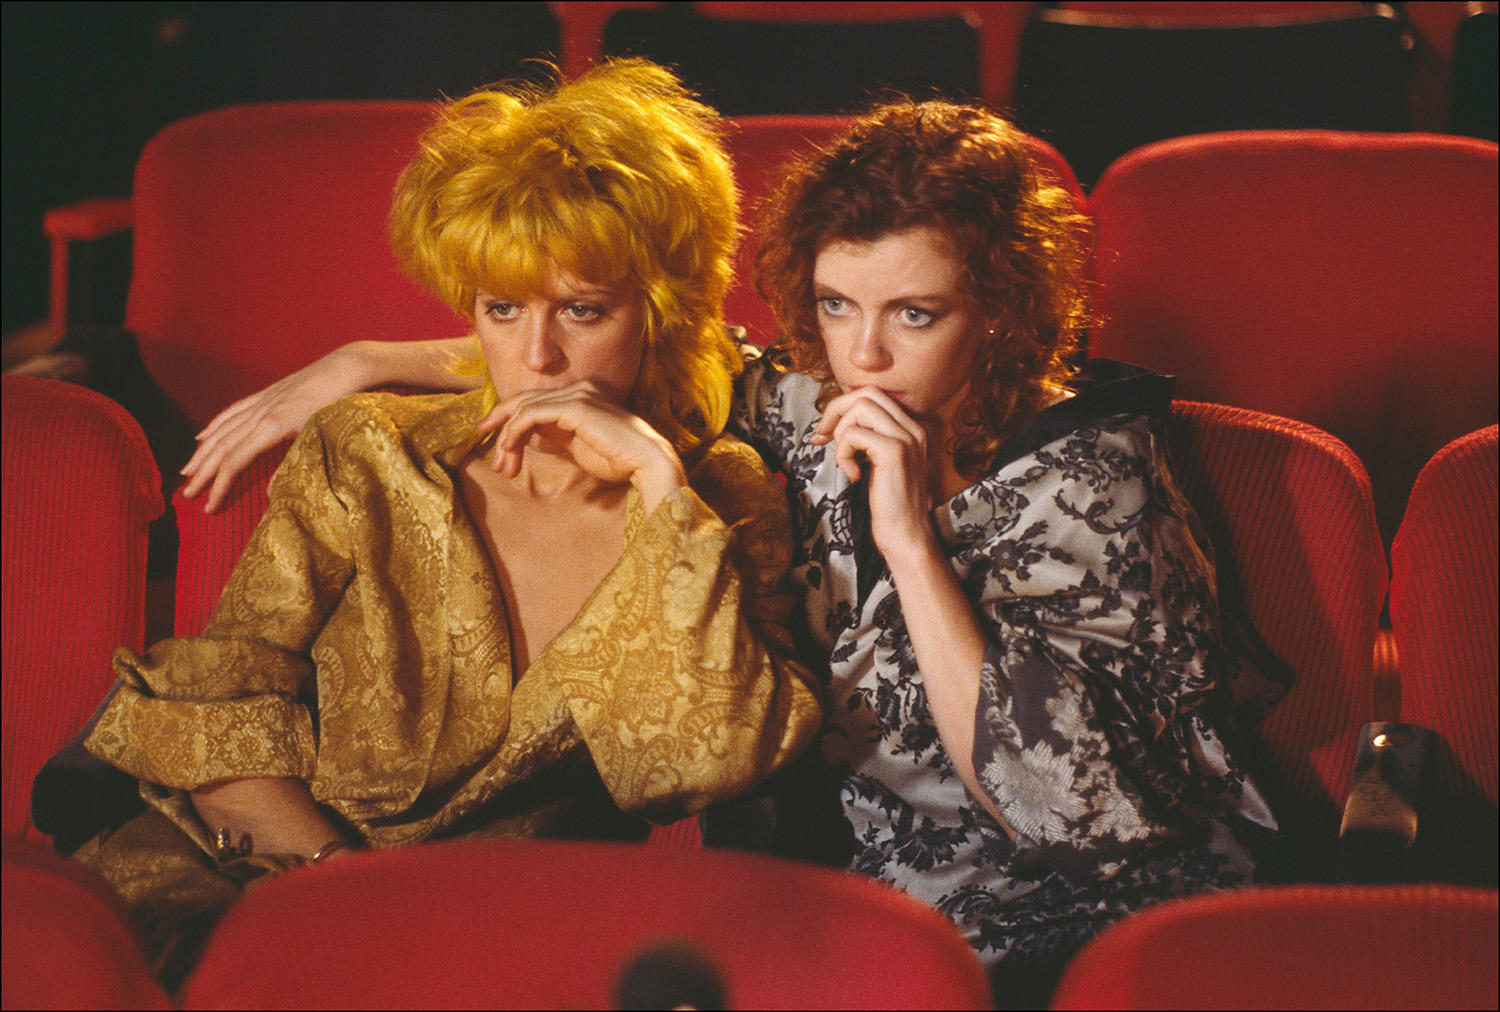 Sharon Kane and Carol Cross, 1985